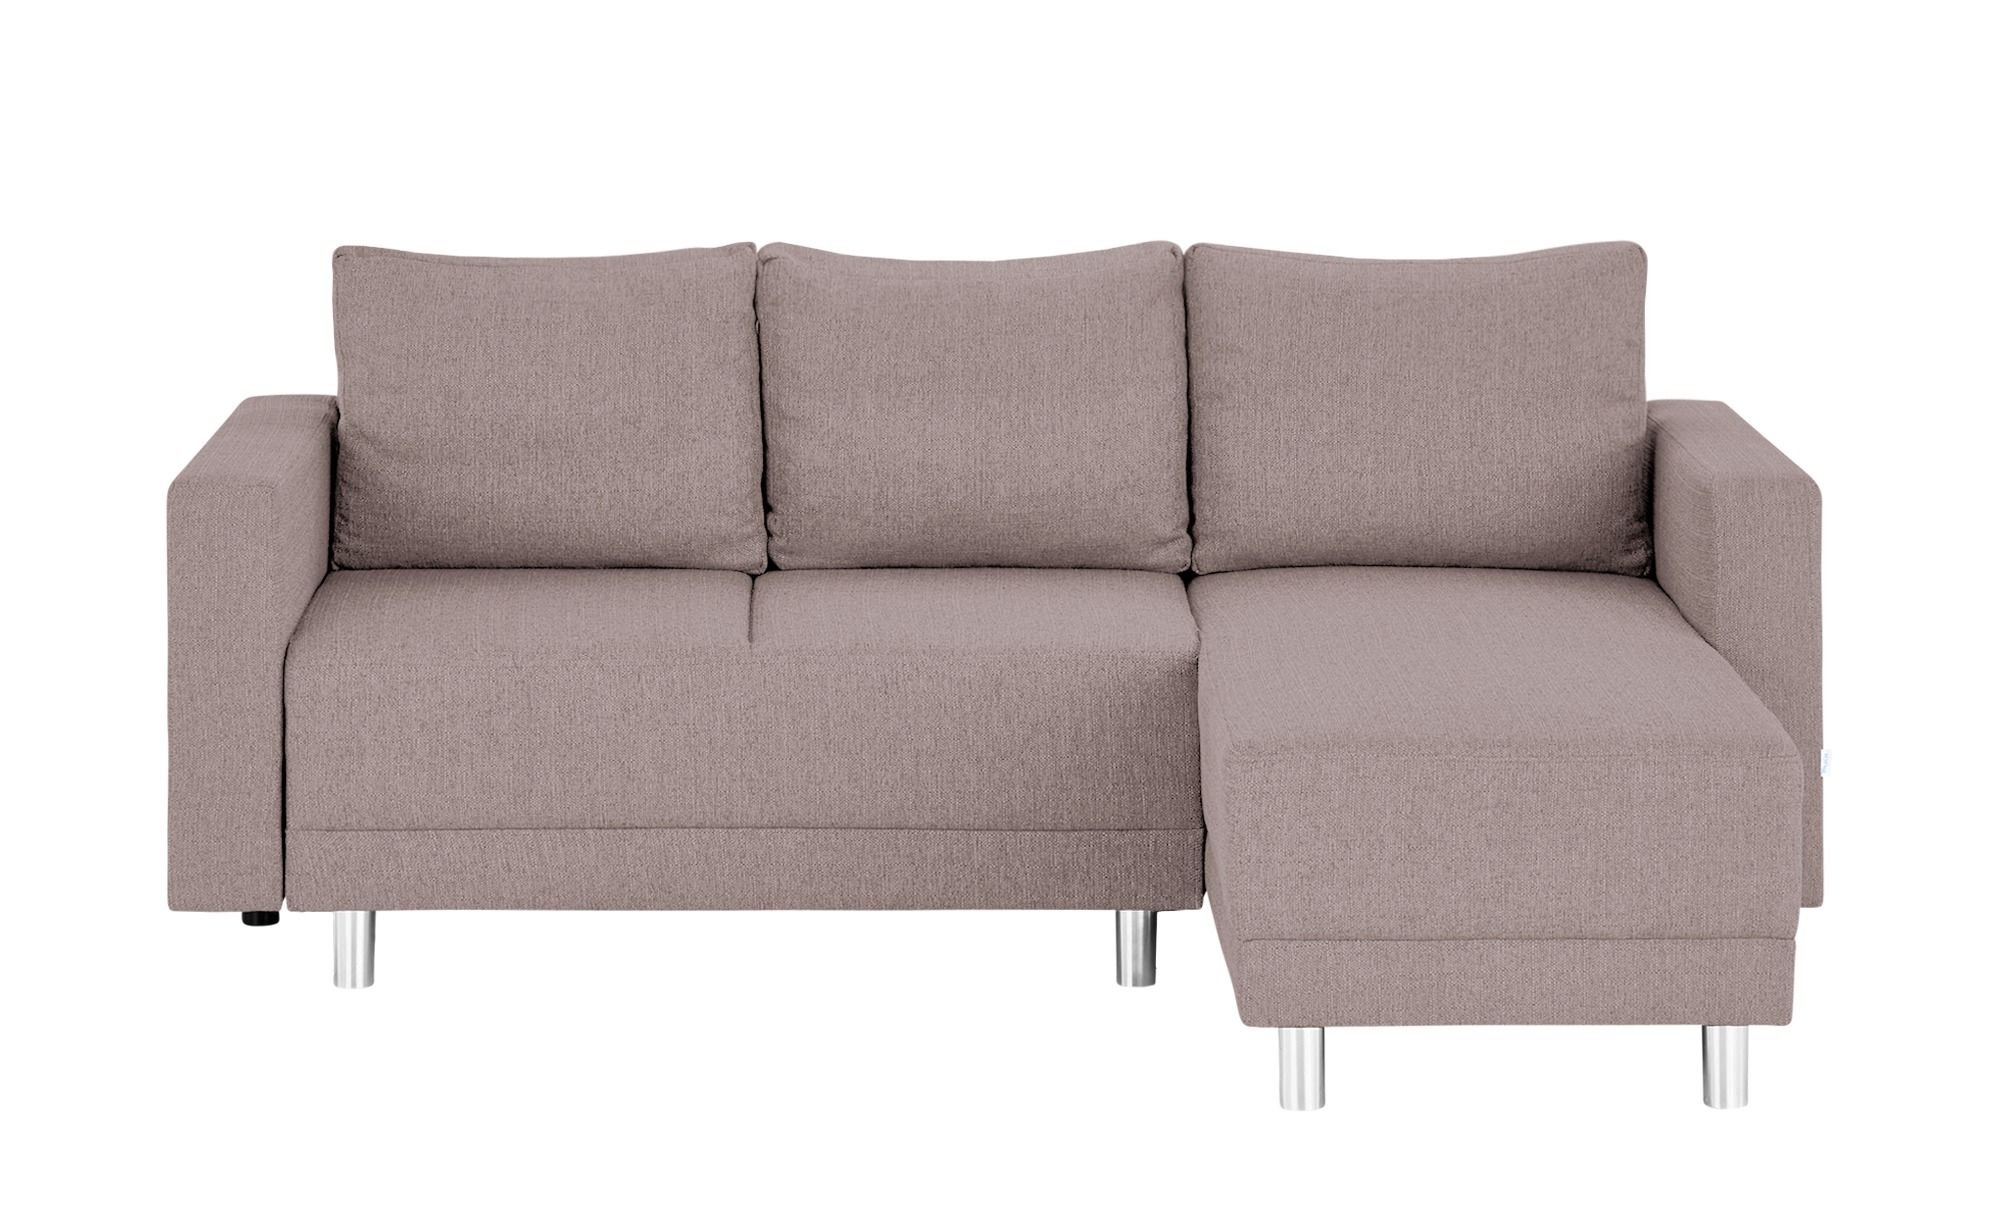 Switch Ecksofa Altrosa Webstoff Denver Ecksofa Mobel Sofa Und Sofa